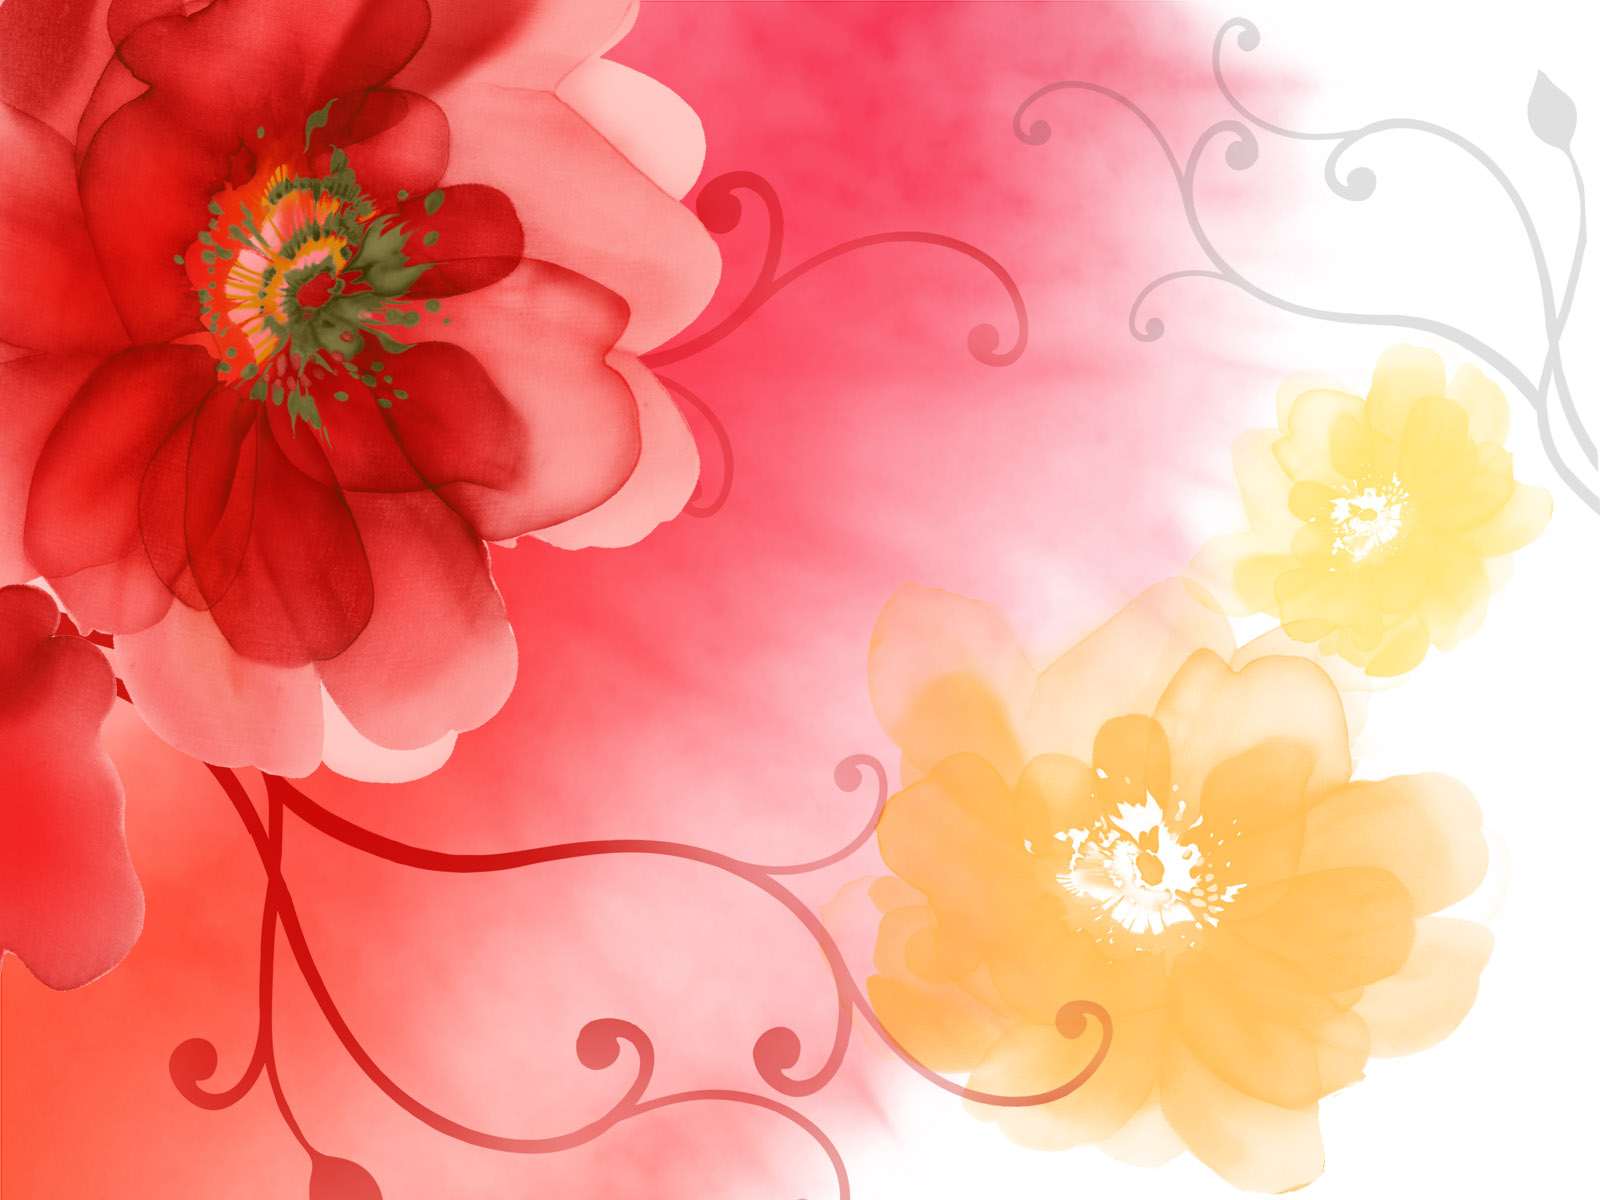 ... - Flower Paintings - Flower Backgrounds 1600*1200 Wallpaper 39